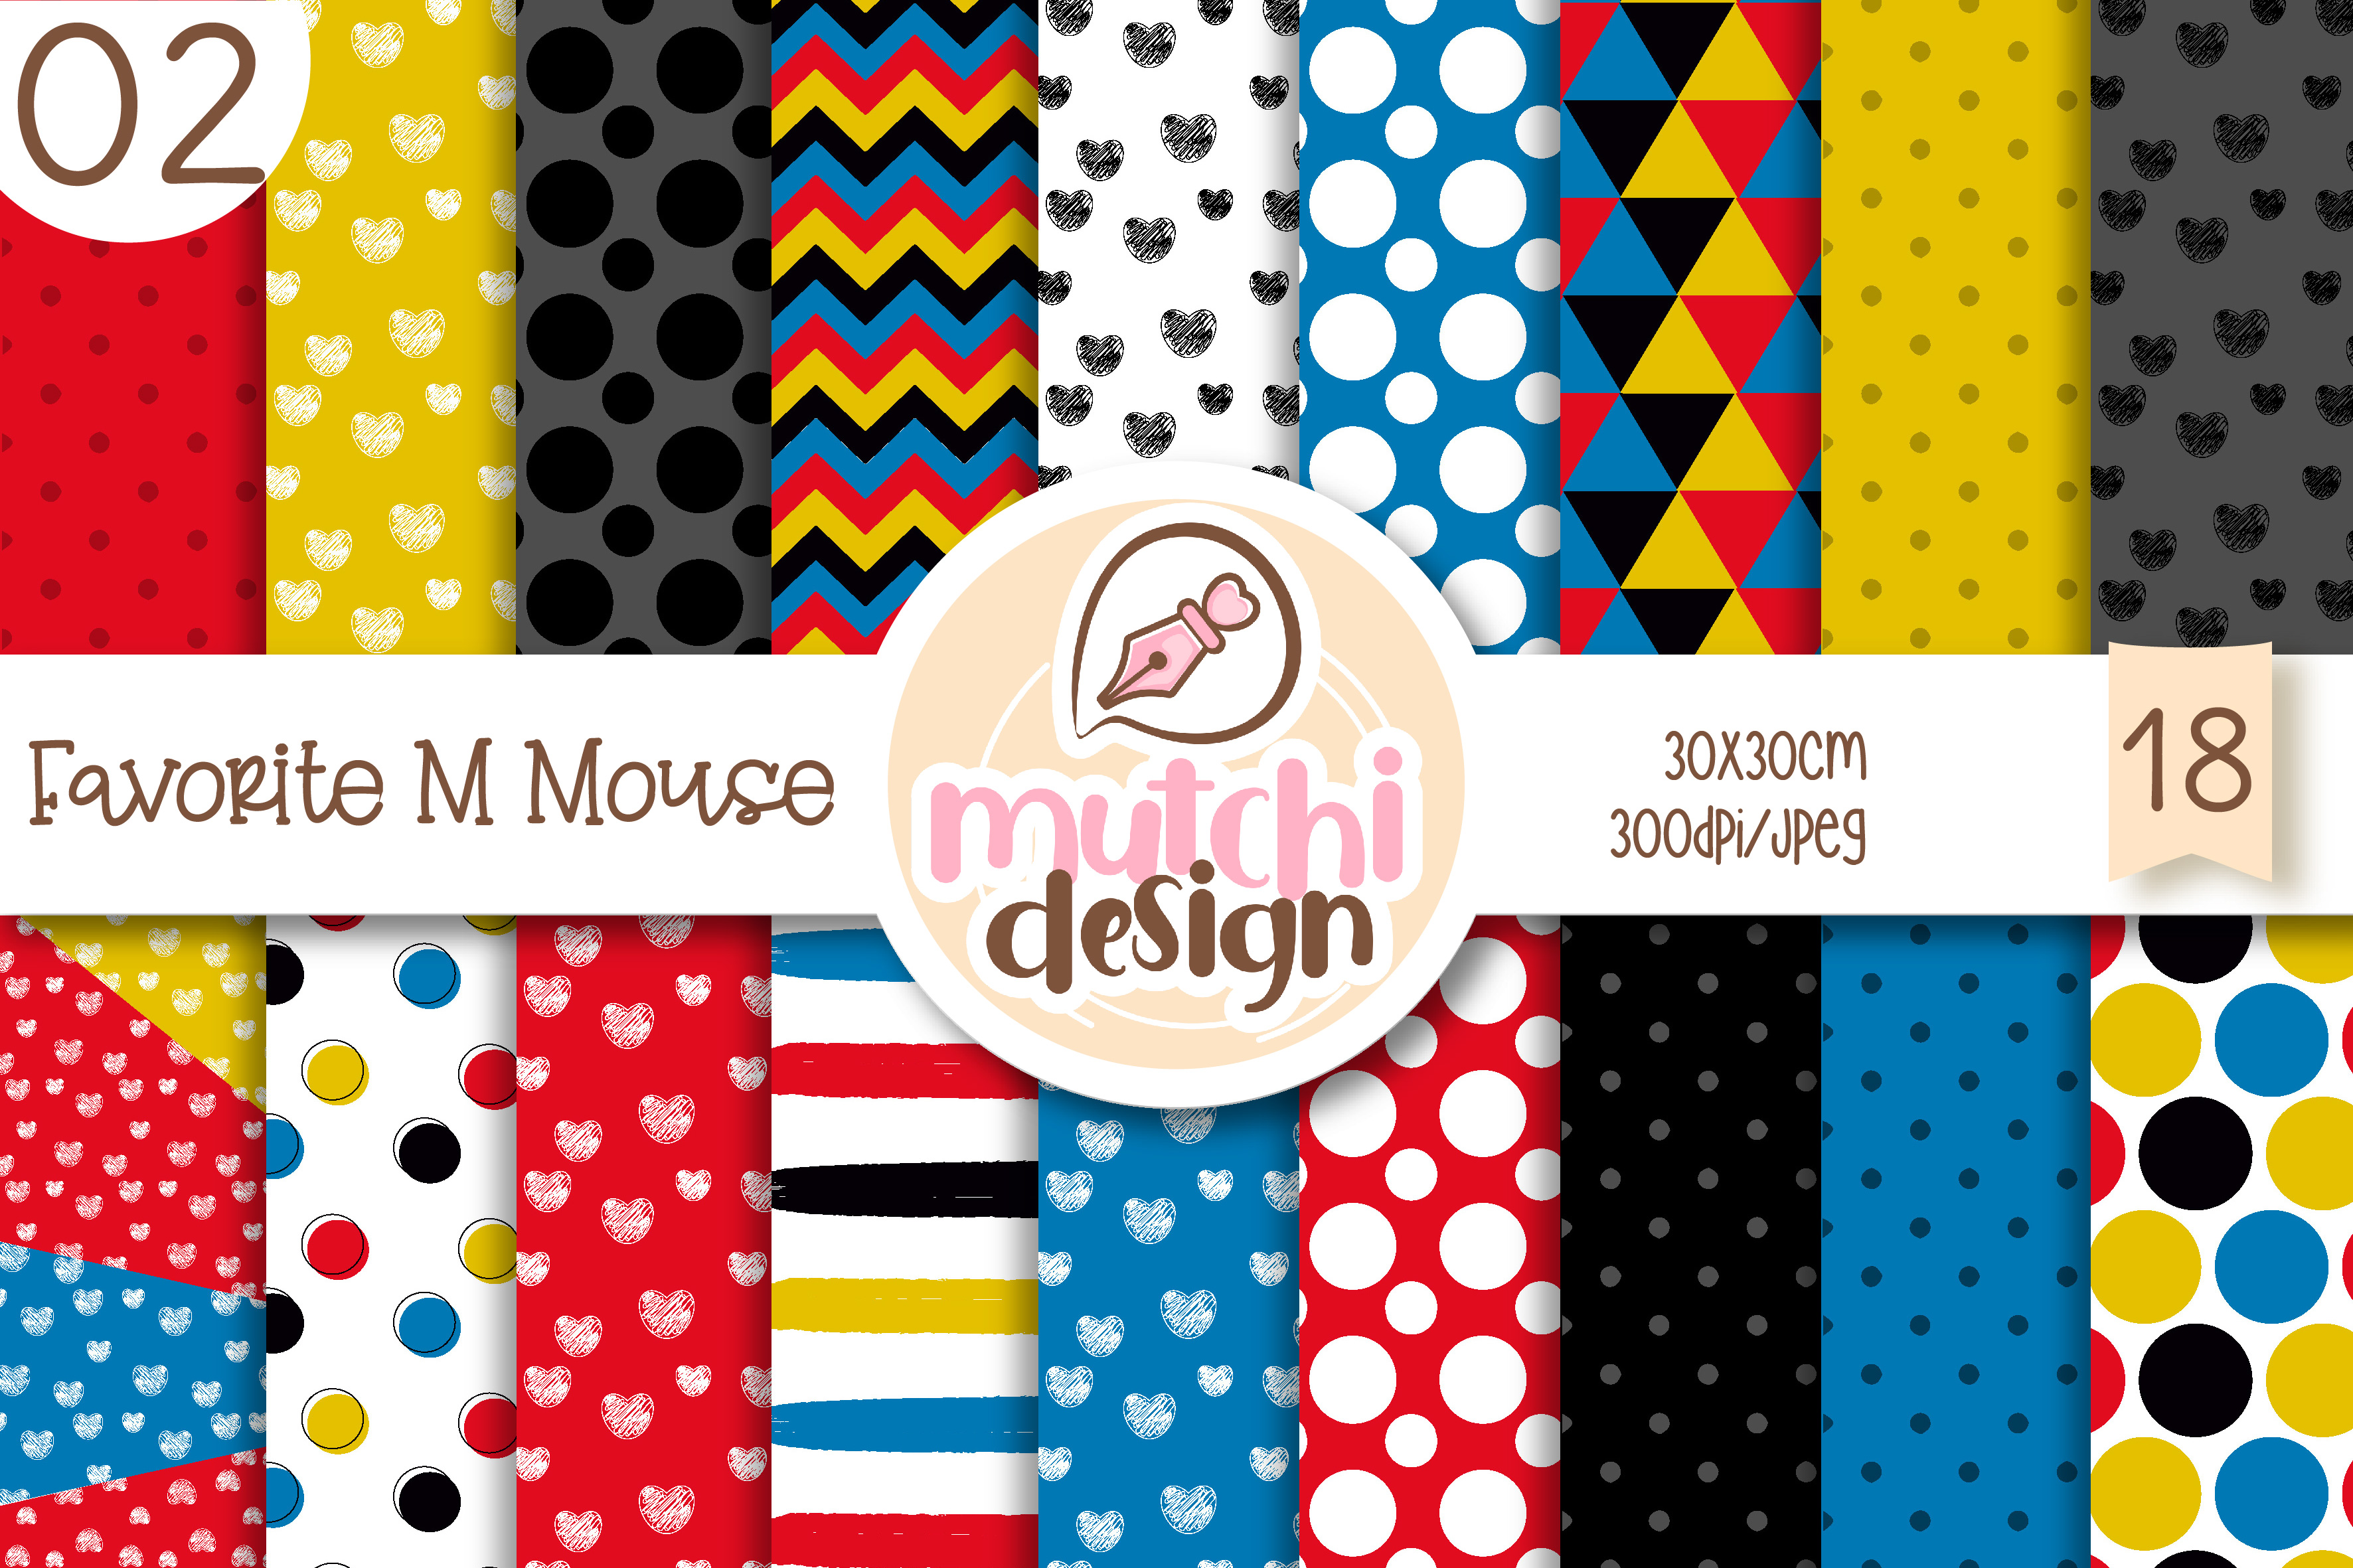 Download Free Favorite M Mouse 02 Digital Papers Graphic By Mutchi Design for Cricut Explore, Silhouette and other cutting machines.